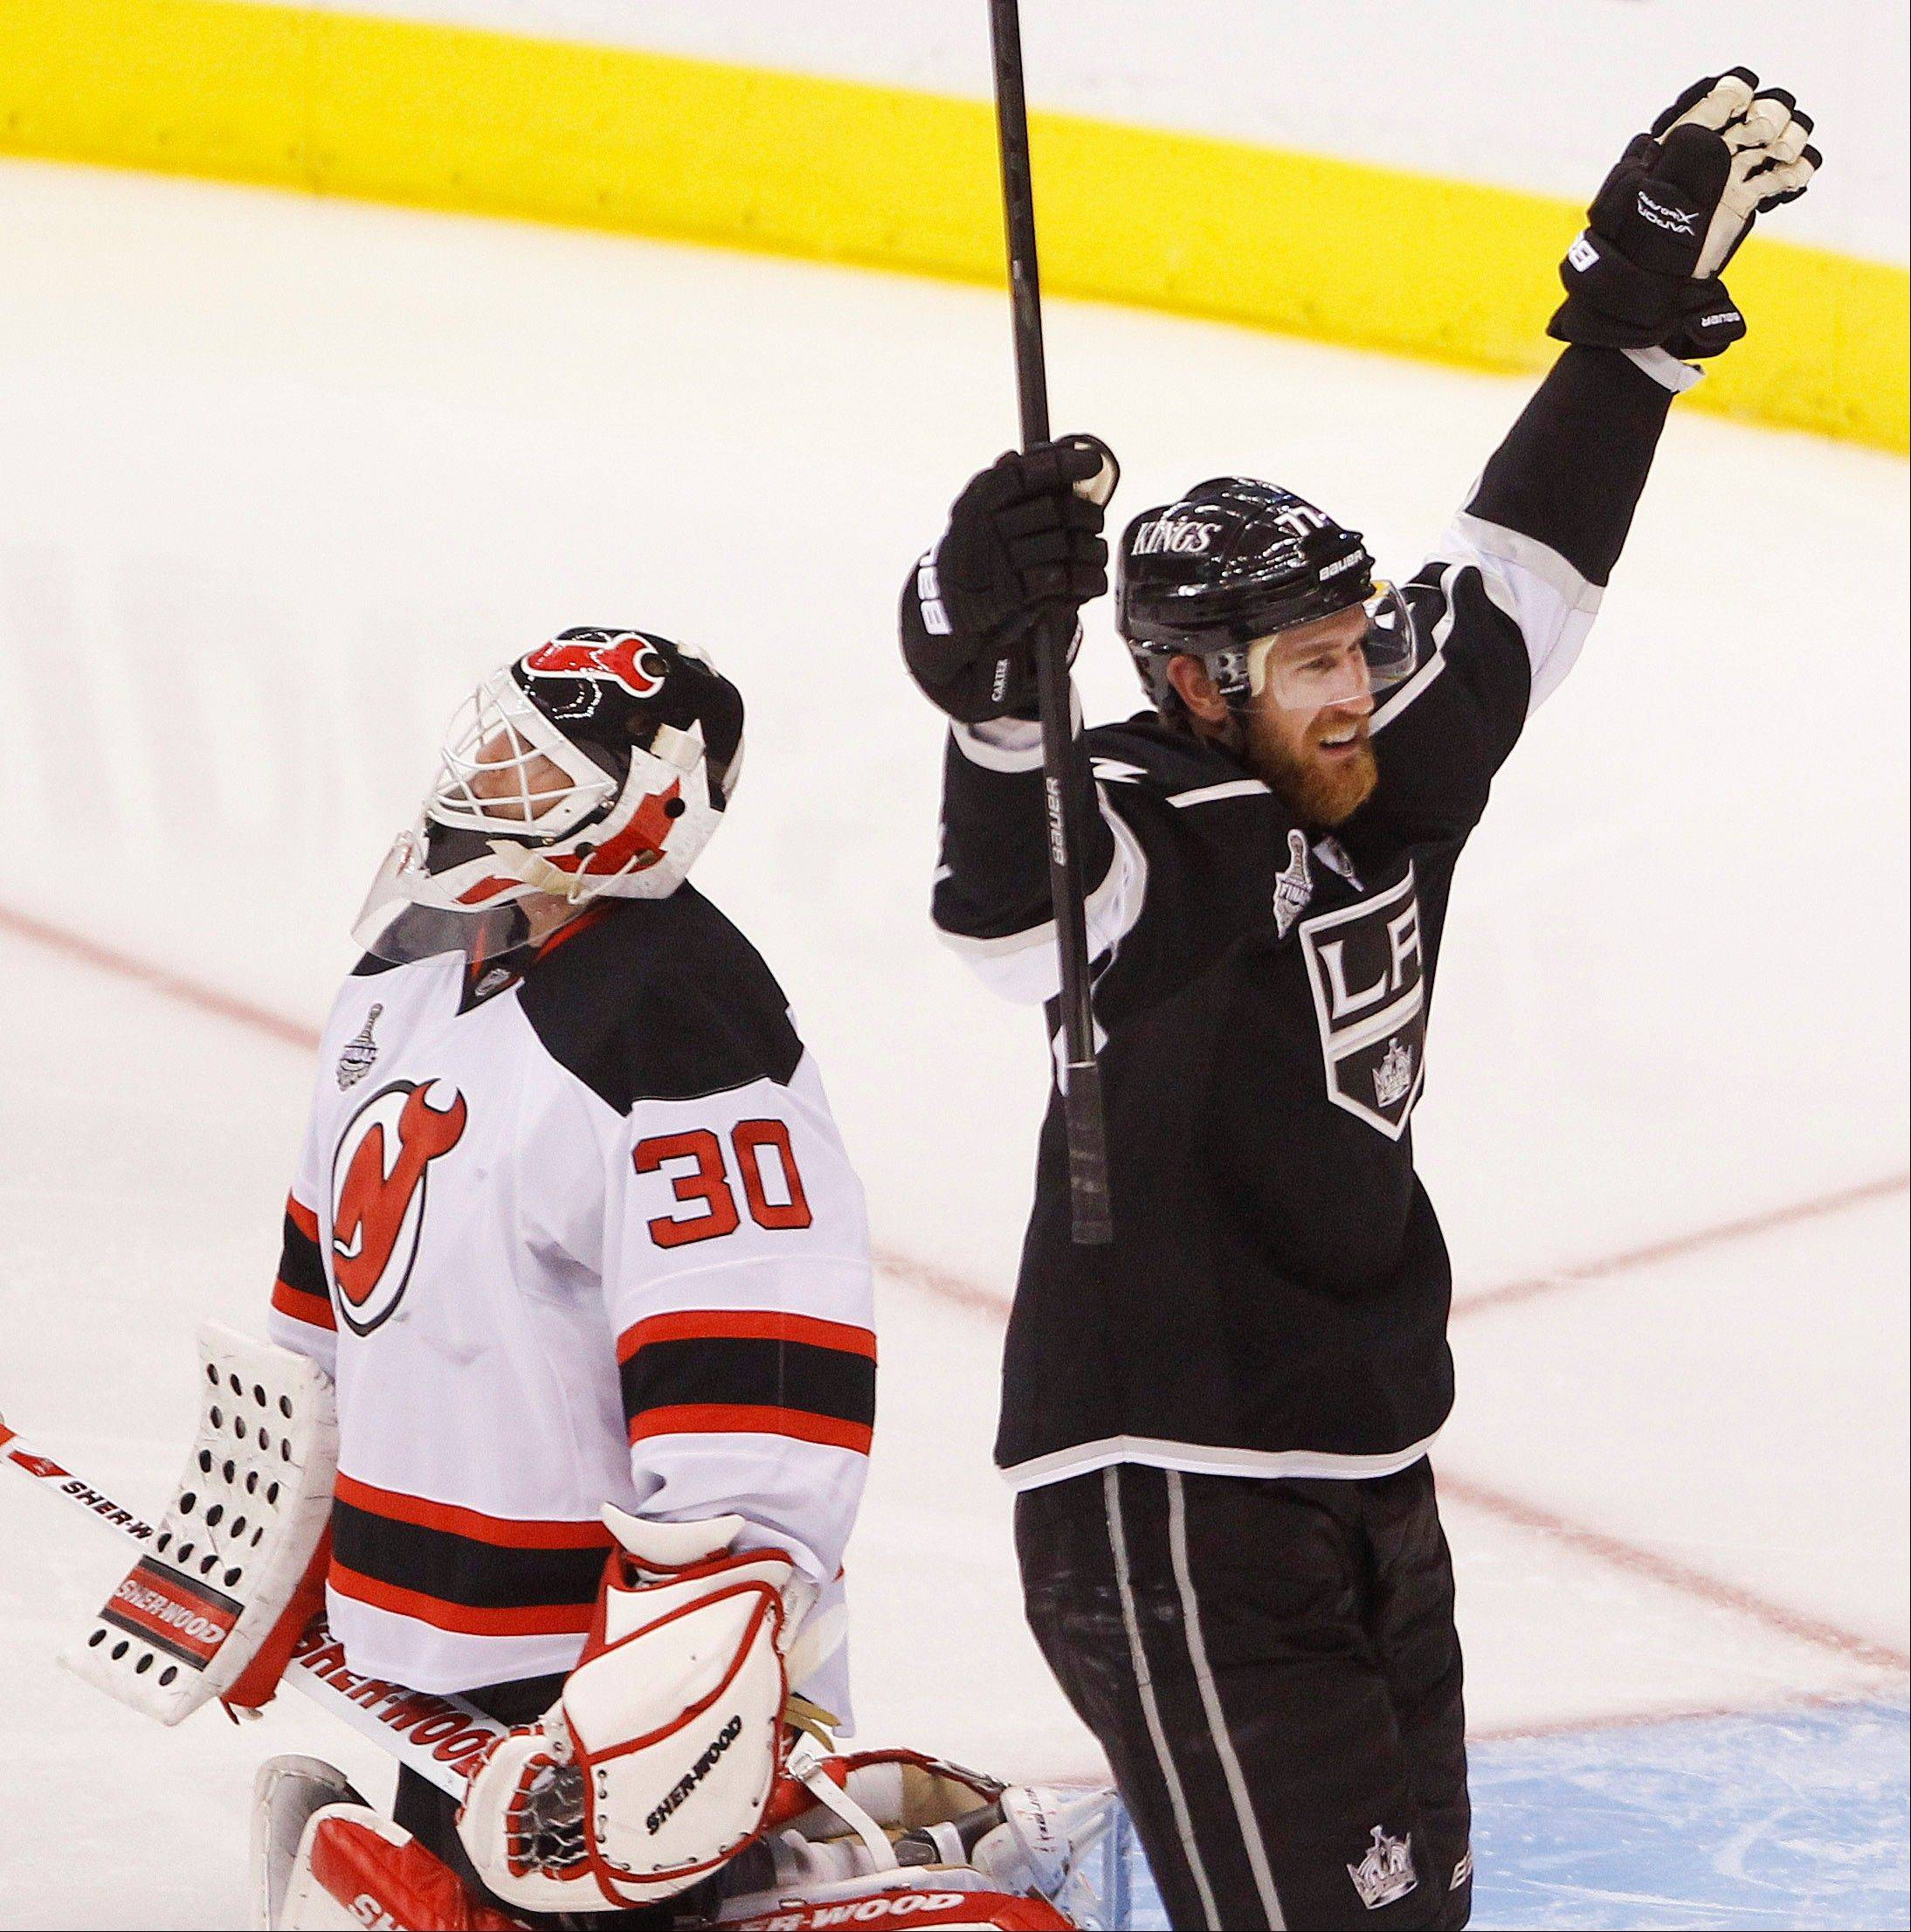 Los Angeles Kings center Jeff Carter celebrates Monday after scoring against New Jersey Devils in the second period during Game 6 of the Stanley Cup Finals.